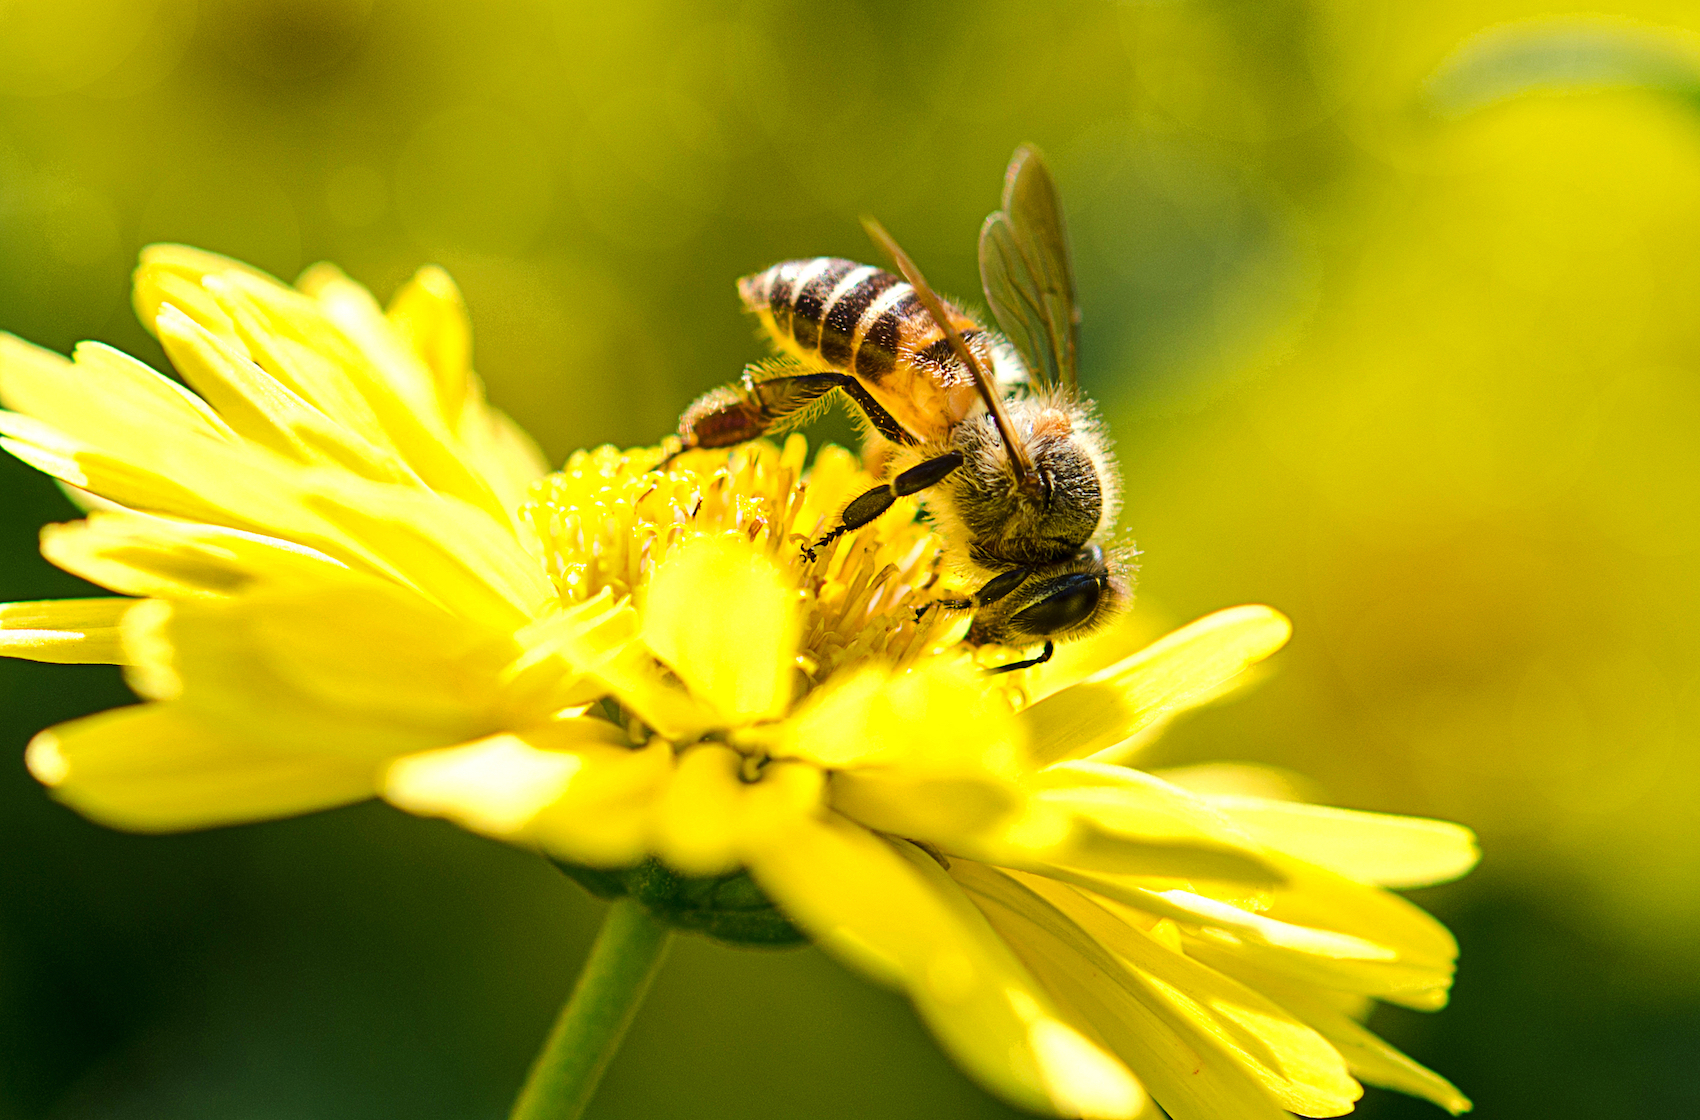 Biologists at UC San Diego have shown that the popular pesticide thiamethoxam can significantly damage the ability of honey bees to fly.